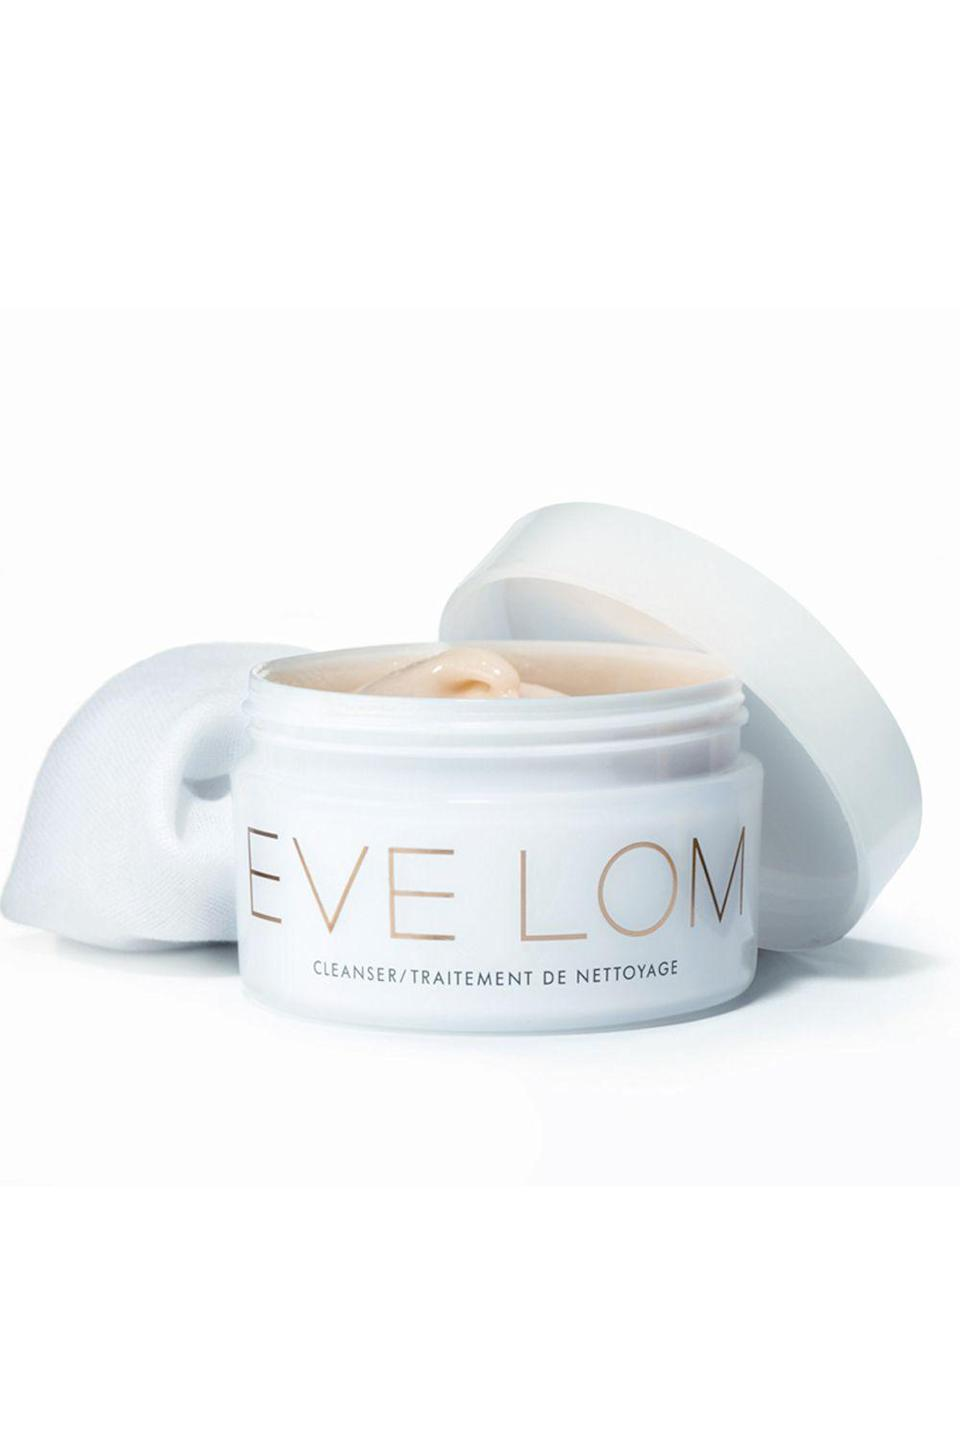 """<p><strong>Eve Lom</strong></p><p>sephora.com</p><p><strong>$50.00</strong></p><p><a href=""""https://go.redirectingat.com?id=74968X1596630&url=https%3A%2F%2Fwww.sephora.com%2Fproduct%2Fcleanser-P381436&sref=https%3A%2F%2Fwww.cosmopolitan.com%2Fstyle-beauty%2Fbeauty%2Fg19620718%2Fbest-makeup-remover%2F"""" rel=""""nofollow noopener"""" target=""""_blank"""" data-ylk=""""slk:Shop Now"""" class=""""link rapid-noclick-resp"""">Shop Now</a></p><p>If you fancy yourself a full-face beat and need something that's going to<strong> cut through your <a href=""""https://www.cosmopolitan.com/style-beauty/g3849028/best-full-coverage-foundation/"""" rel=""""nofollow noopener"""" target=""""_blank"""" data-ylk=""""slk:full-coverage foundation"""" class=""""link rapid-noclick-resp"""">full-coverage foundation</a></strong>—without stripping your face of its natural oils—meet your new BFF. Sure, this makeup removing balm is on the pricier side, but TBH, it's worth not having to tug on your skin <em>or </em>use 300 cotton pads to take off a day's worth of makeup.</p>"""